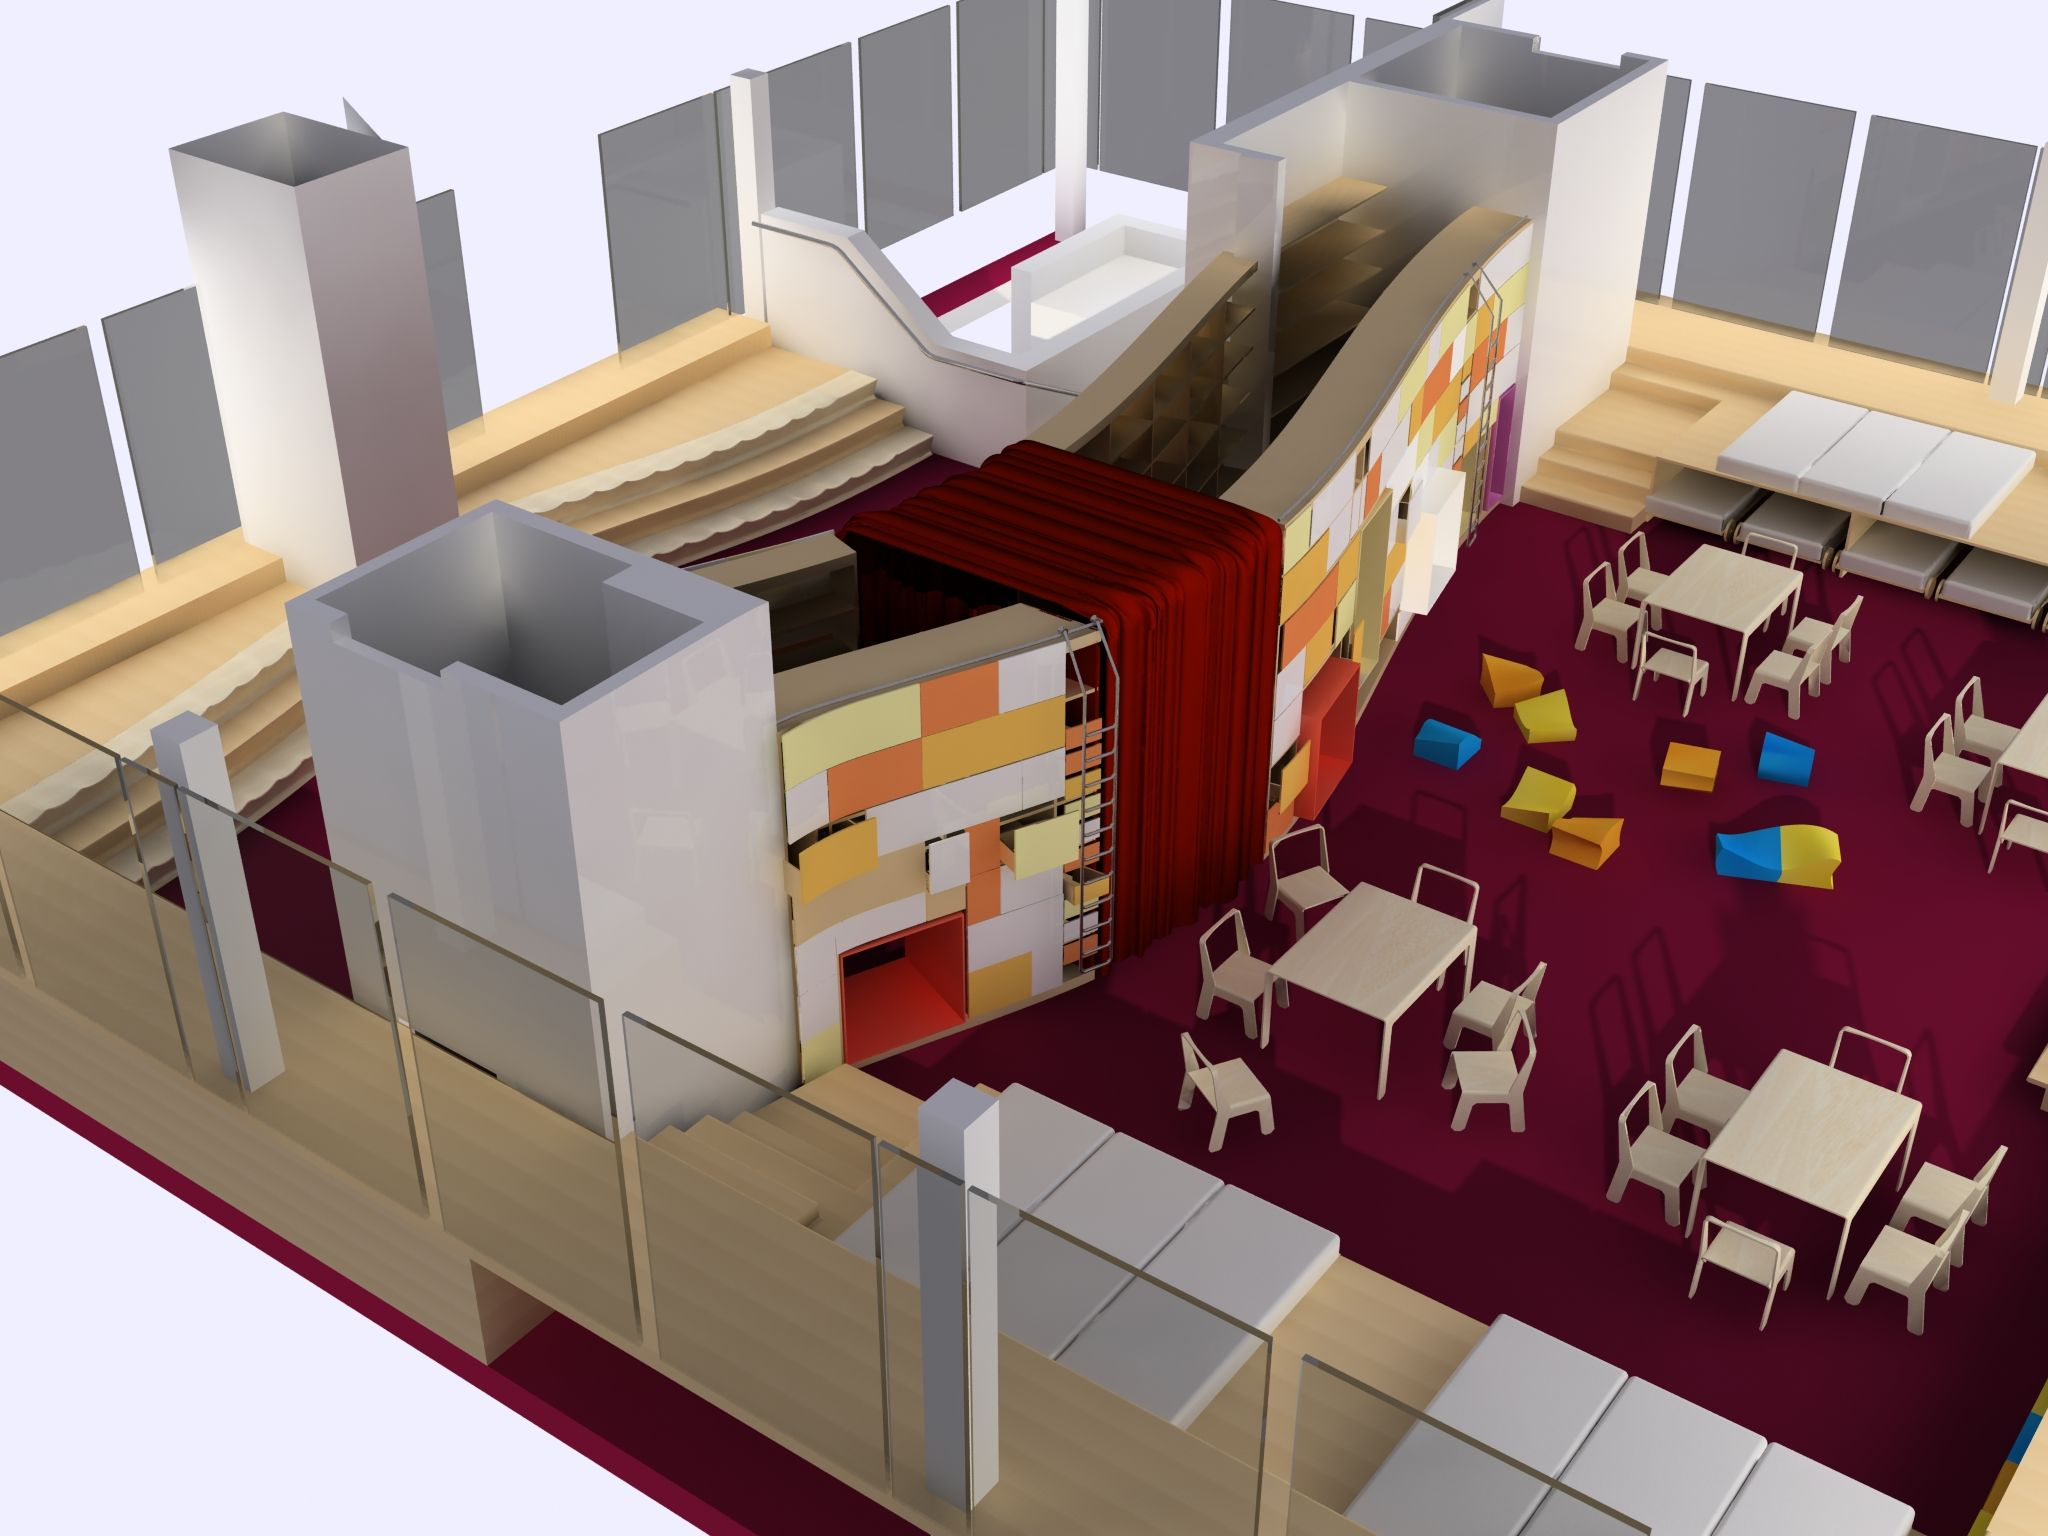 Kindergarten Interior Design Proposal MA Thesis Overall View